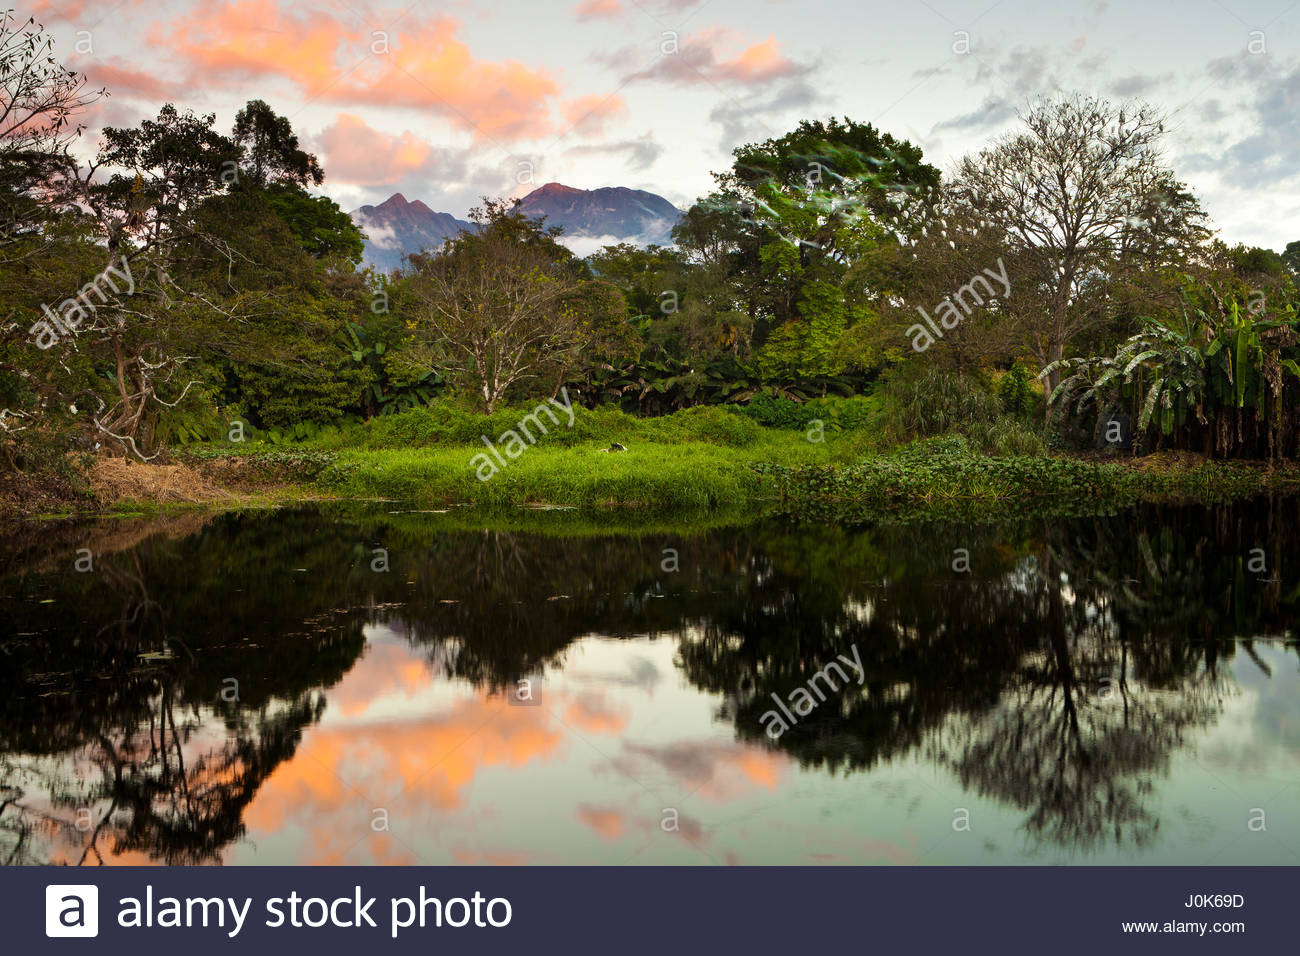 Trees and mirrored reflections, and last light on Volcan Baru, 3475 m, the highest point in Panama. - Stock Image